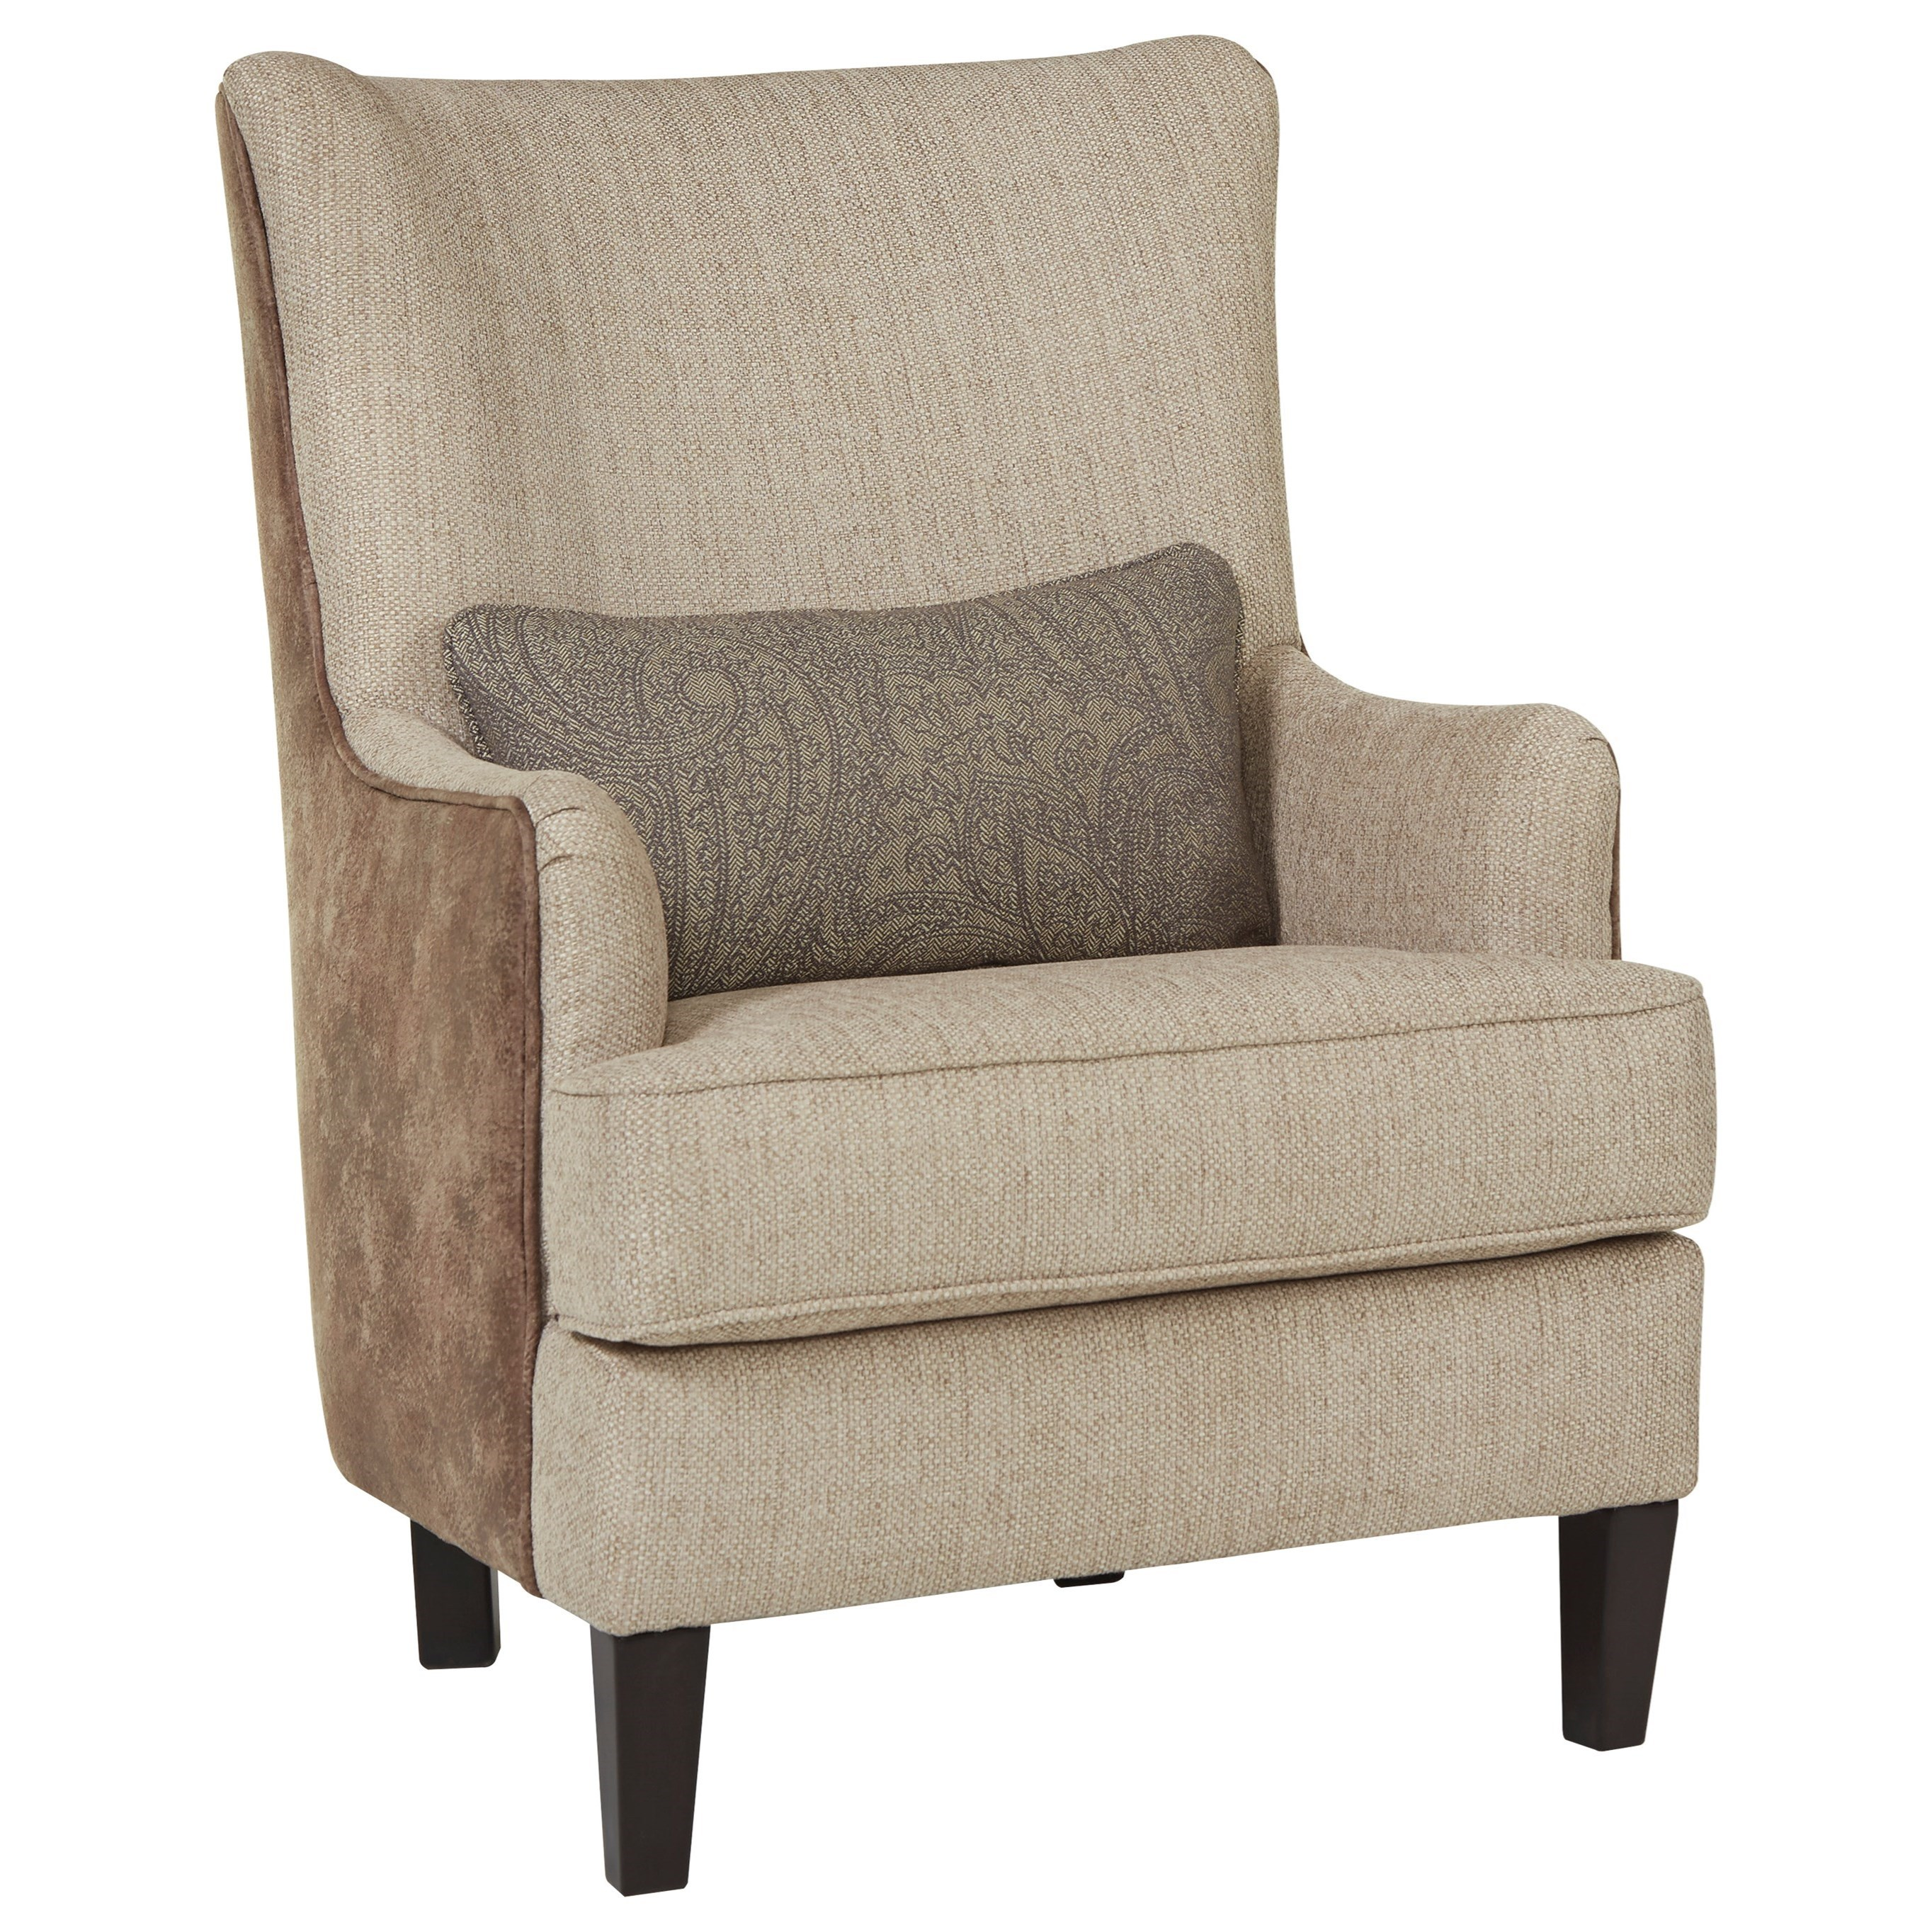 Modern Wing Back Accent Chair with Kidney Pillow by Millennium Wolf and Gardiner Wolf Furniture